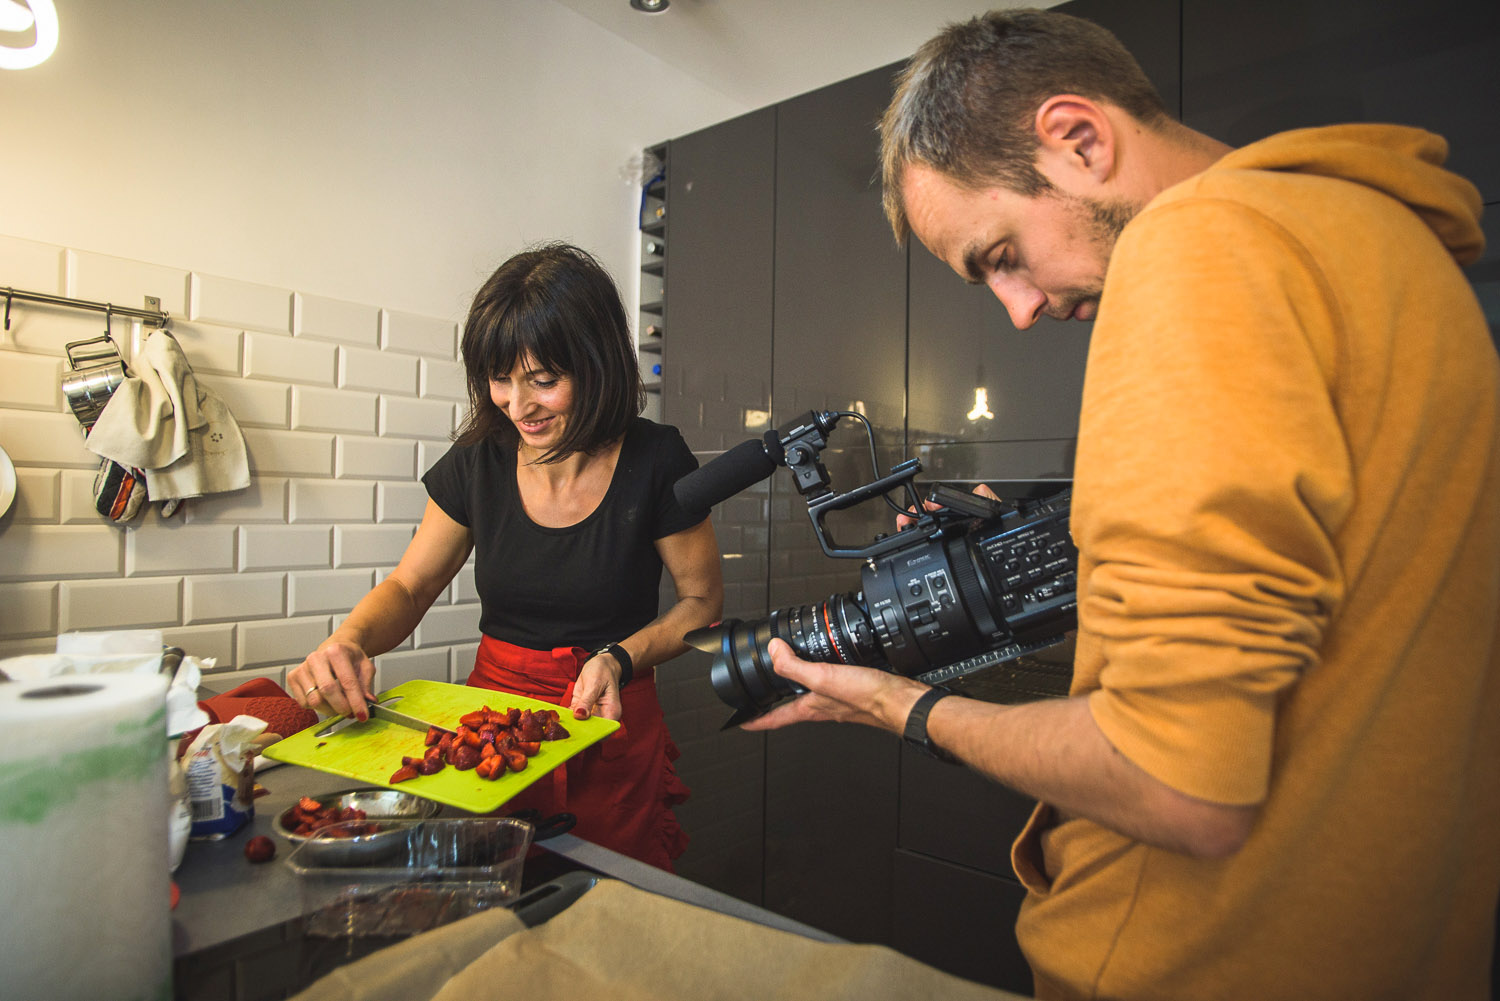 Ad traffic engineer Agnieszka Lasyk shows her baking skills in the video.